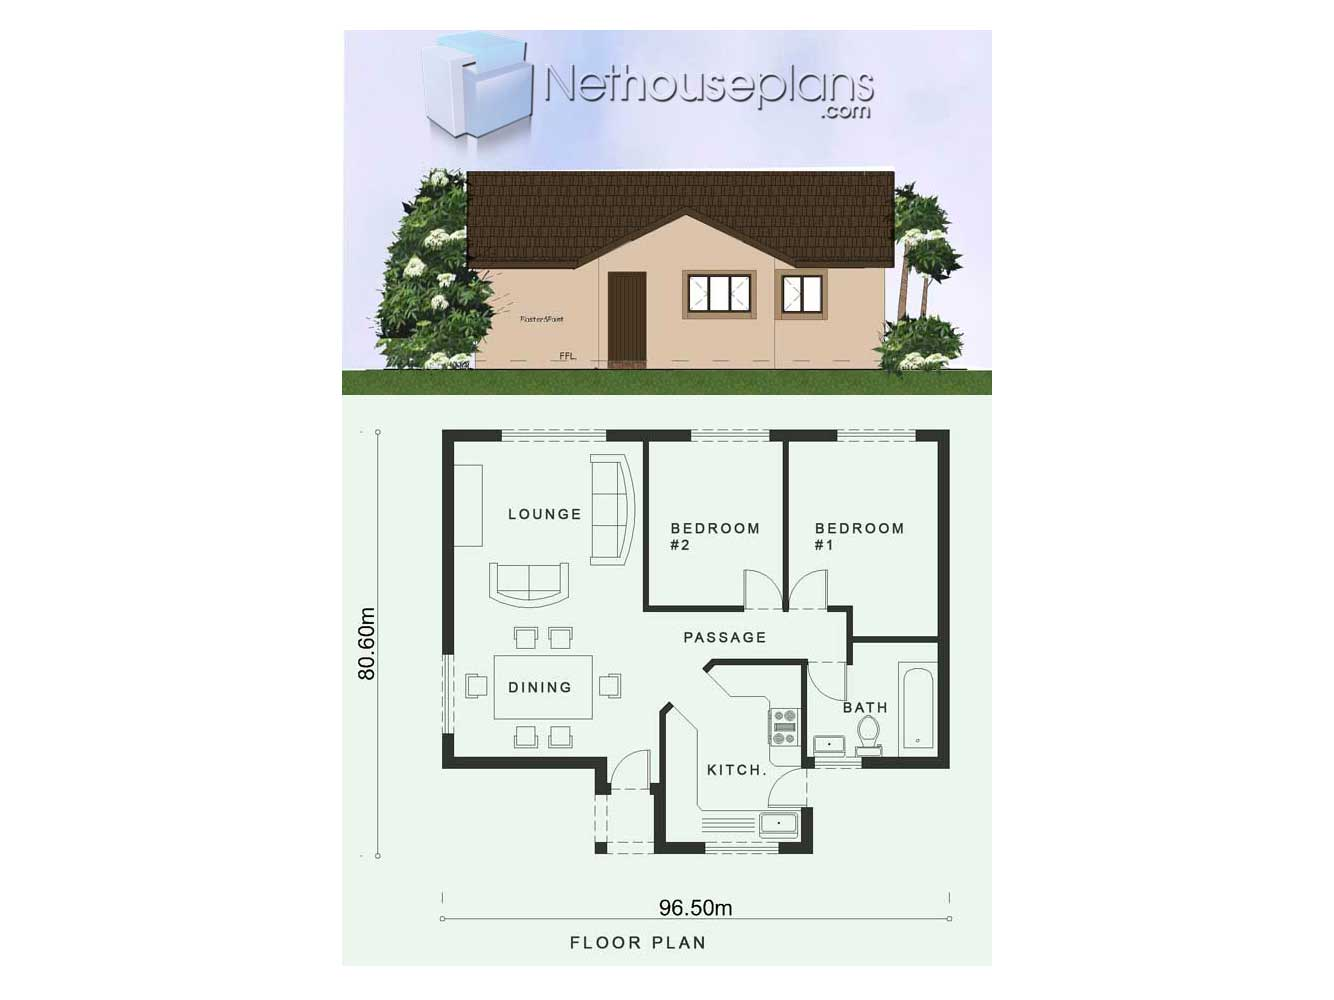 2 Room House Plans | Low Cost 2 Bedroom House Plan ...